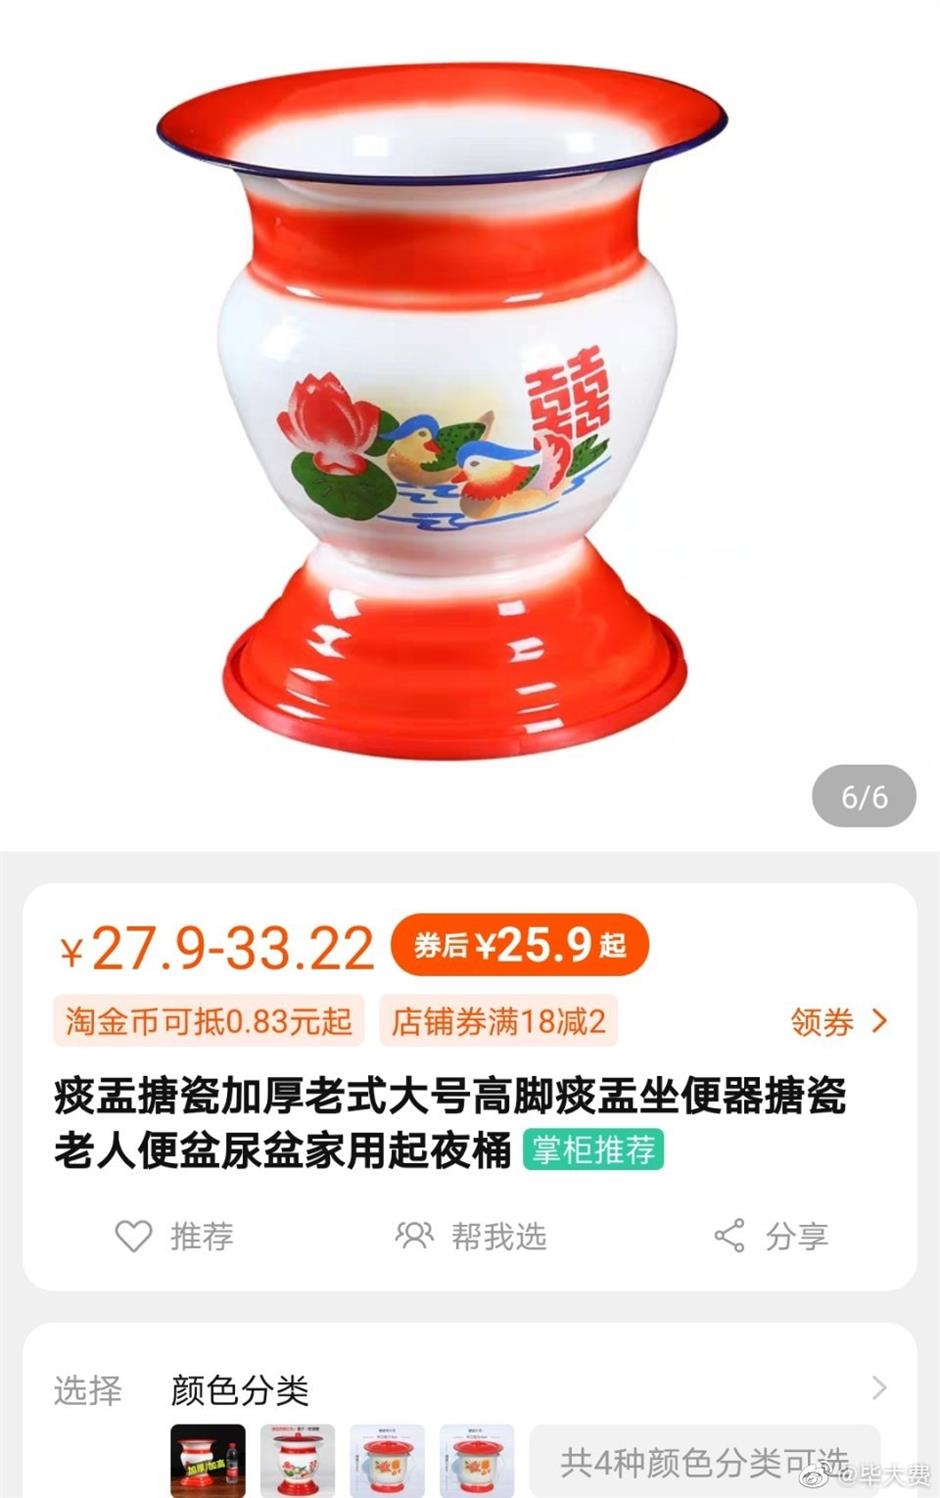 Weibo users lampoon mislabeled portable potty sold on Amazon